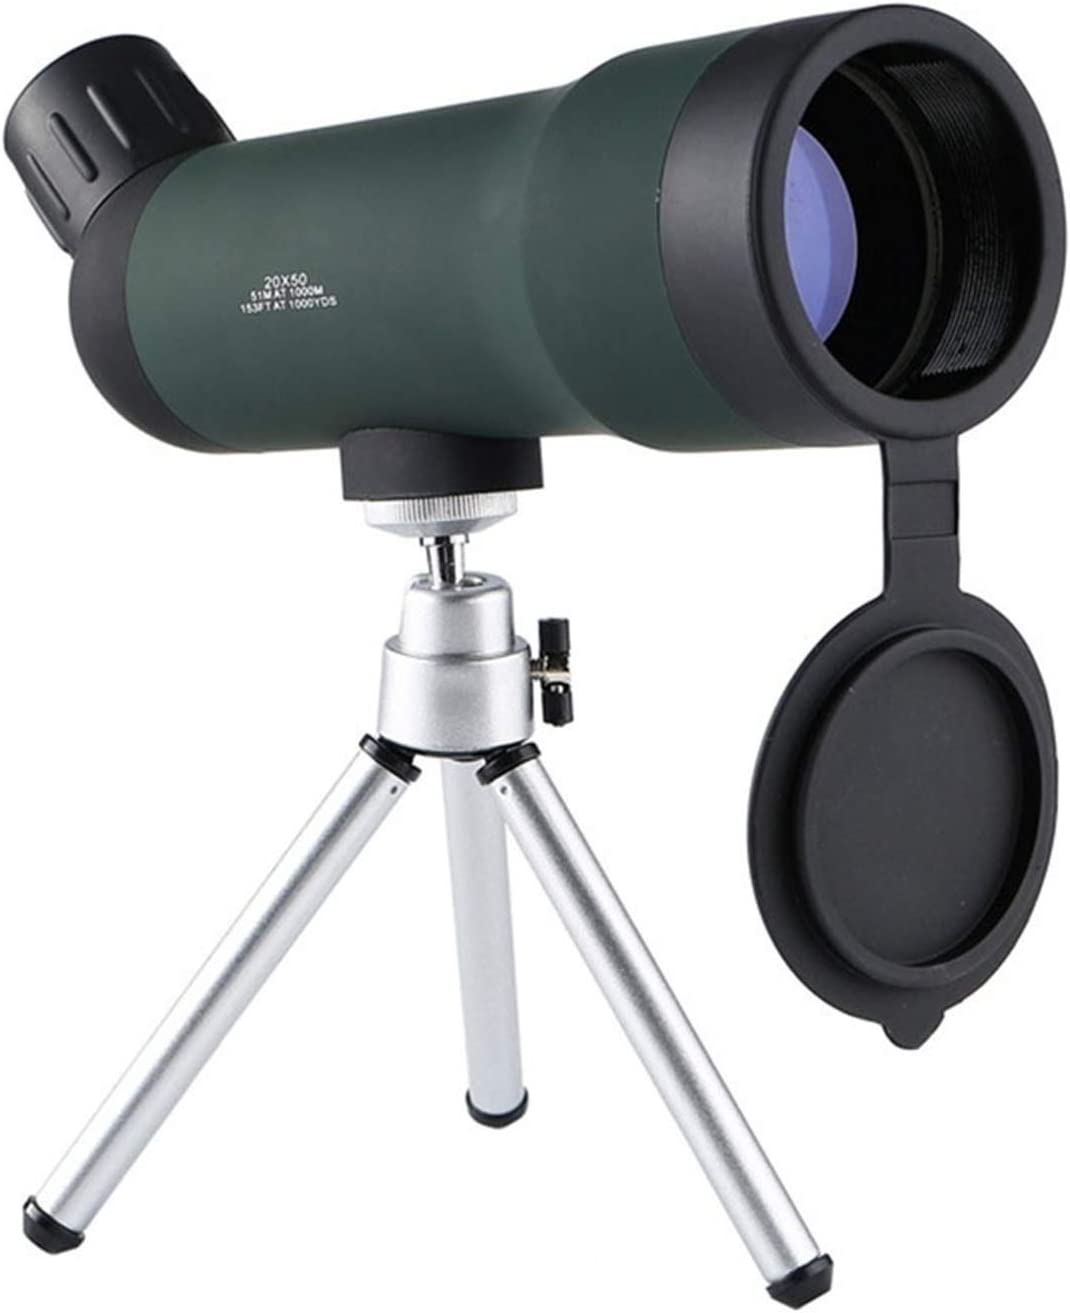 whdz Telescope for Year-end Lowest price challenge annual account Adults Zoom 20X50 Monocular High-De